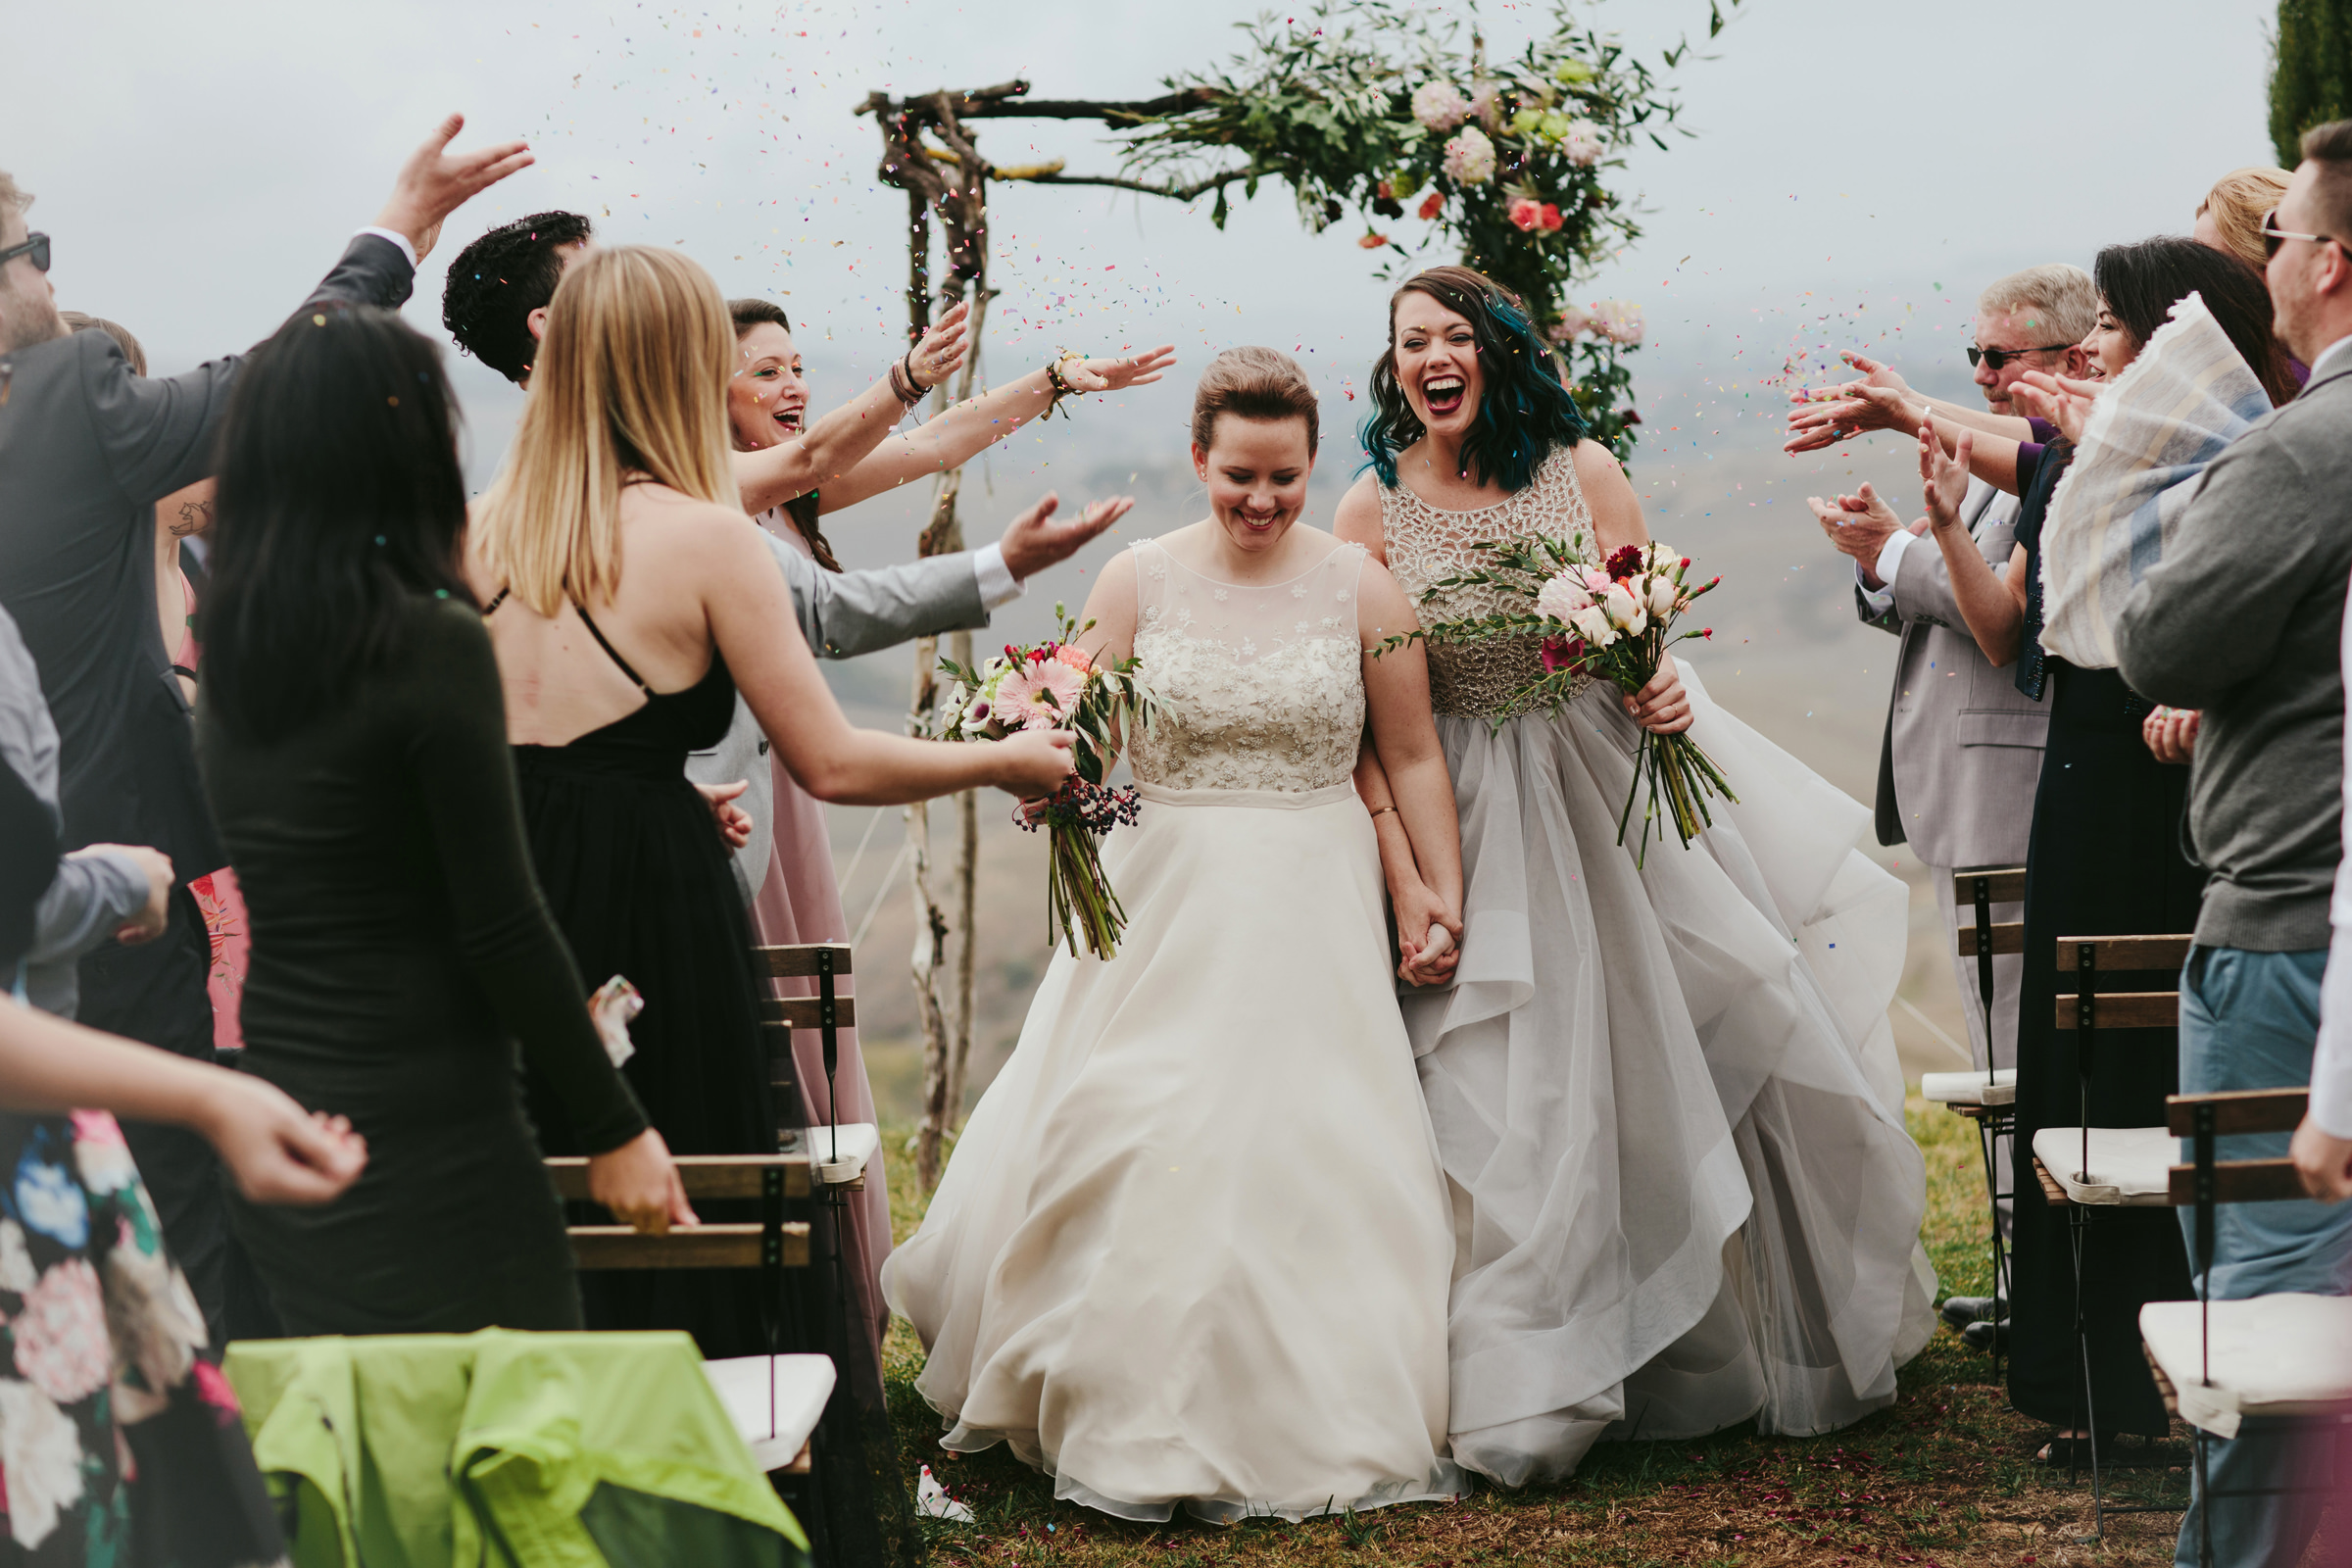 Two happy brides just married - photo by Melia Lucida